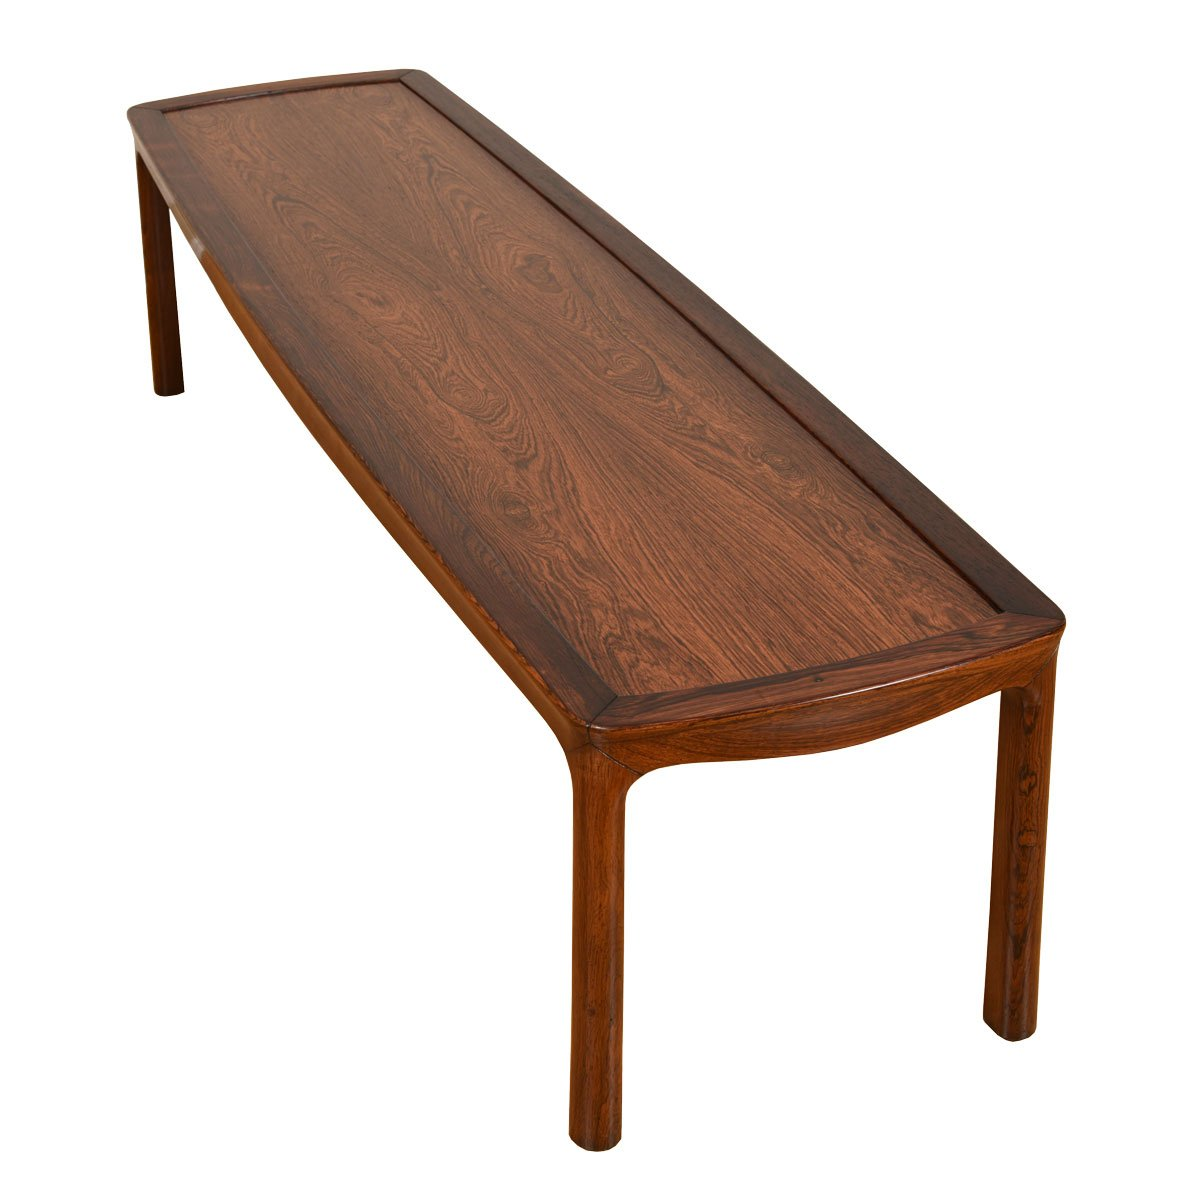 Dunbar Rosewood Coffee / Cocktail Table